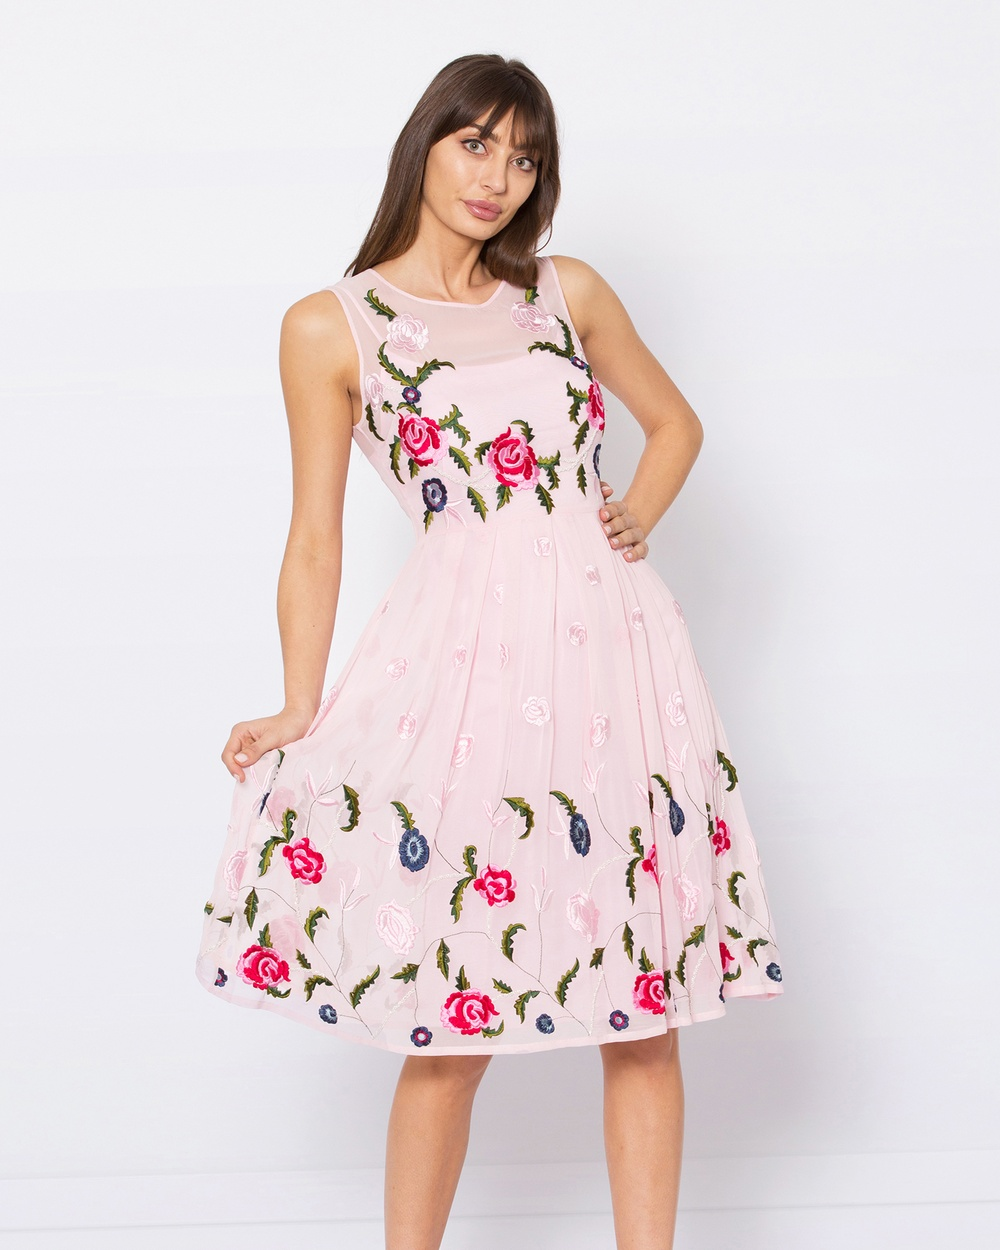 Alannah Hill Pink Grace Kelly Dress